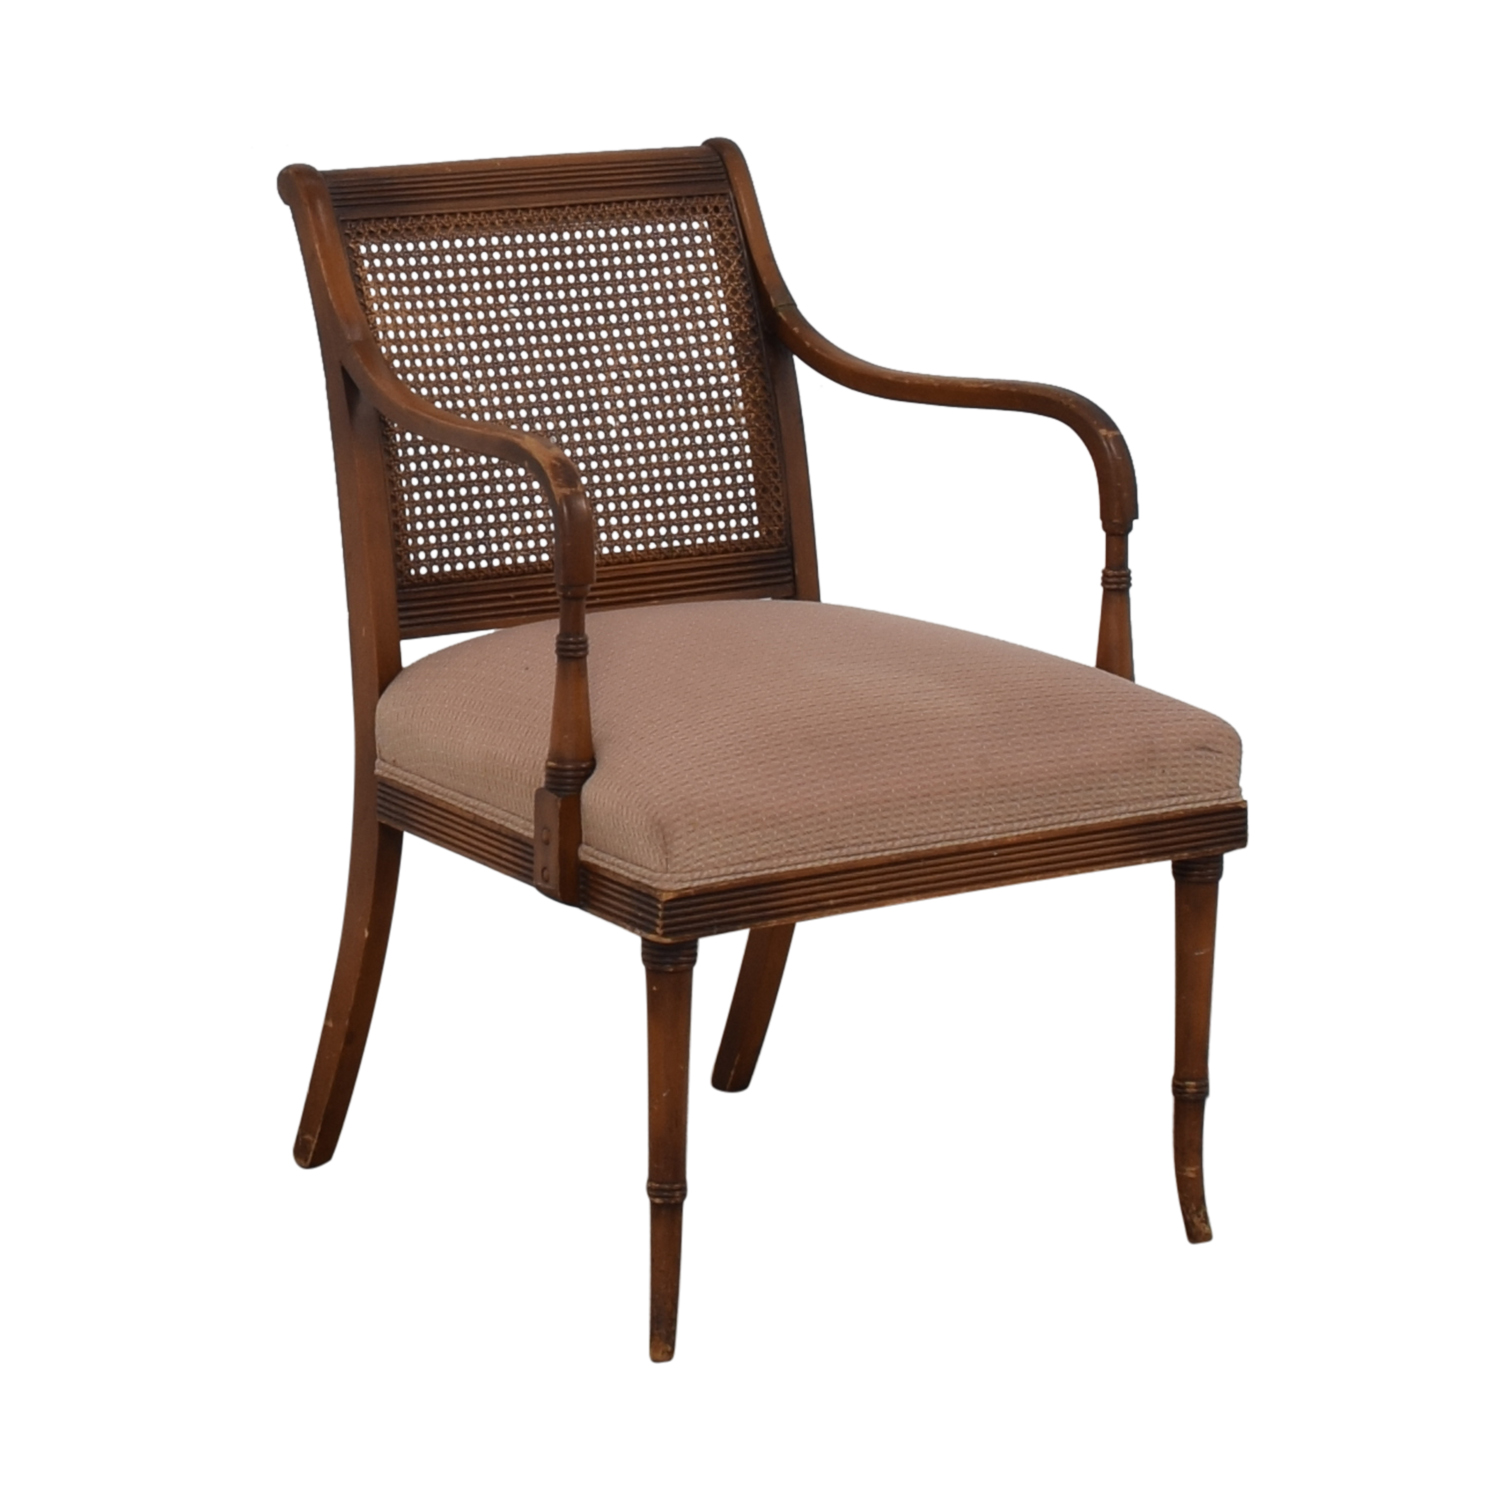 Vintage Rattan Arm Chair for sale